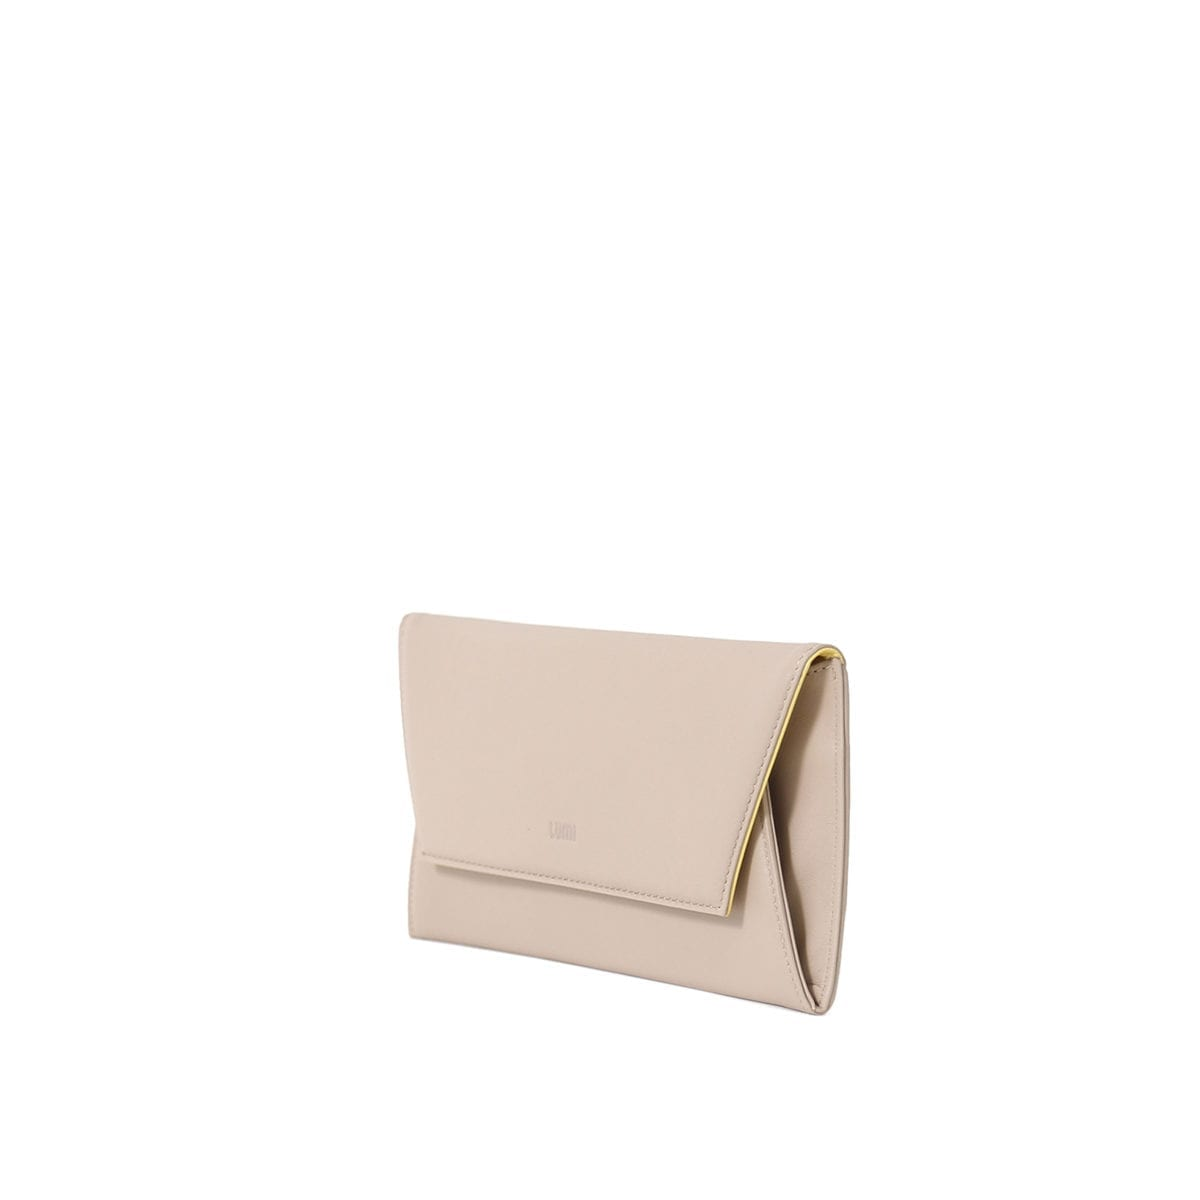 LUMI Talvikki Envelope Wallet in fresh taupe and sorbet combo. This wallet is perfect for daily use to safe-keep your cards and cash. Or use it as a clutch with your evening wear. The wallet is handmade from lovely and soft sheep napa leather, which makes it beautiful to hold in your hand.